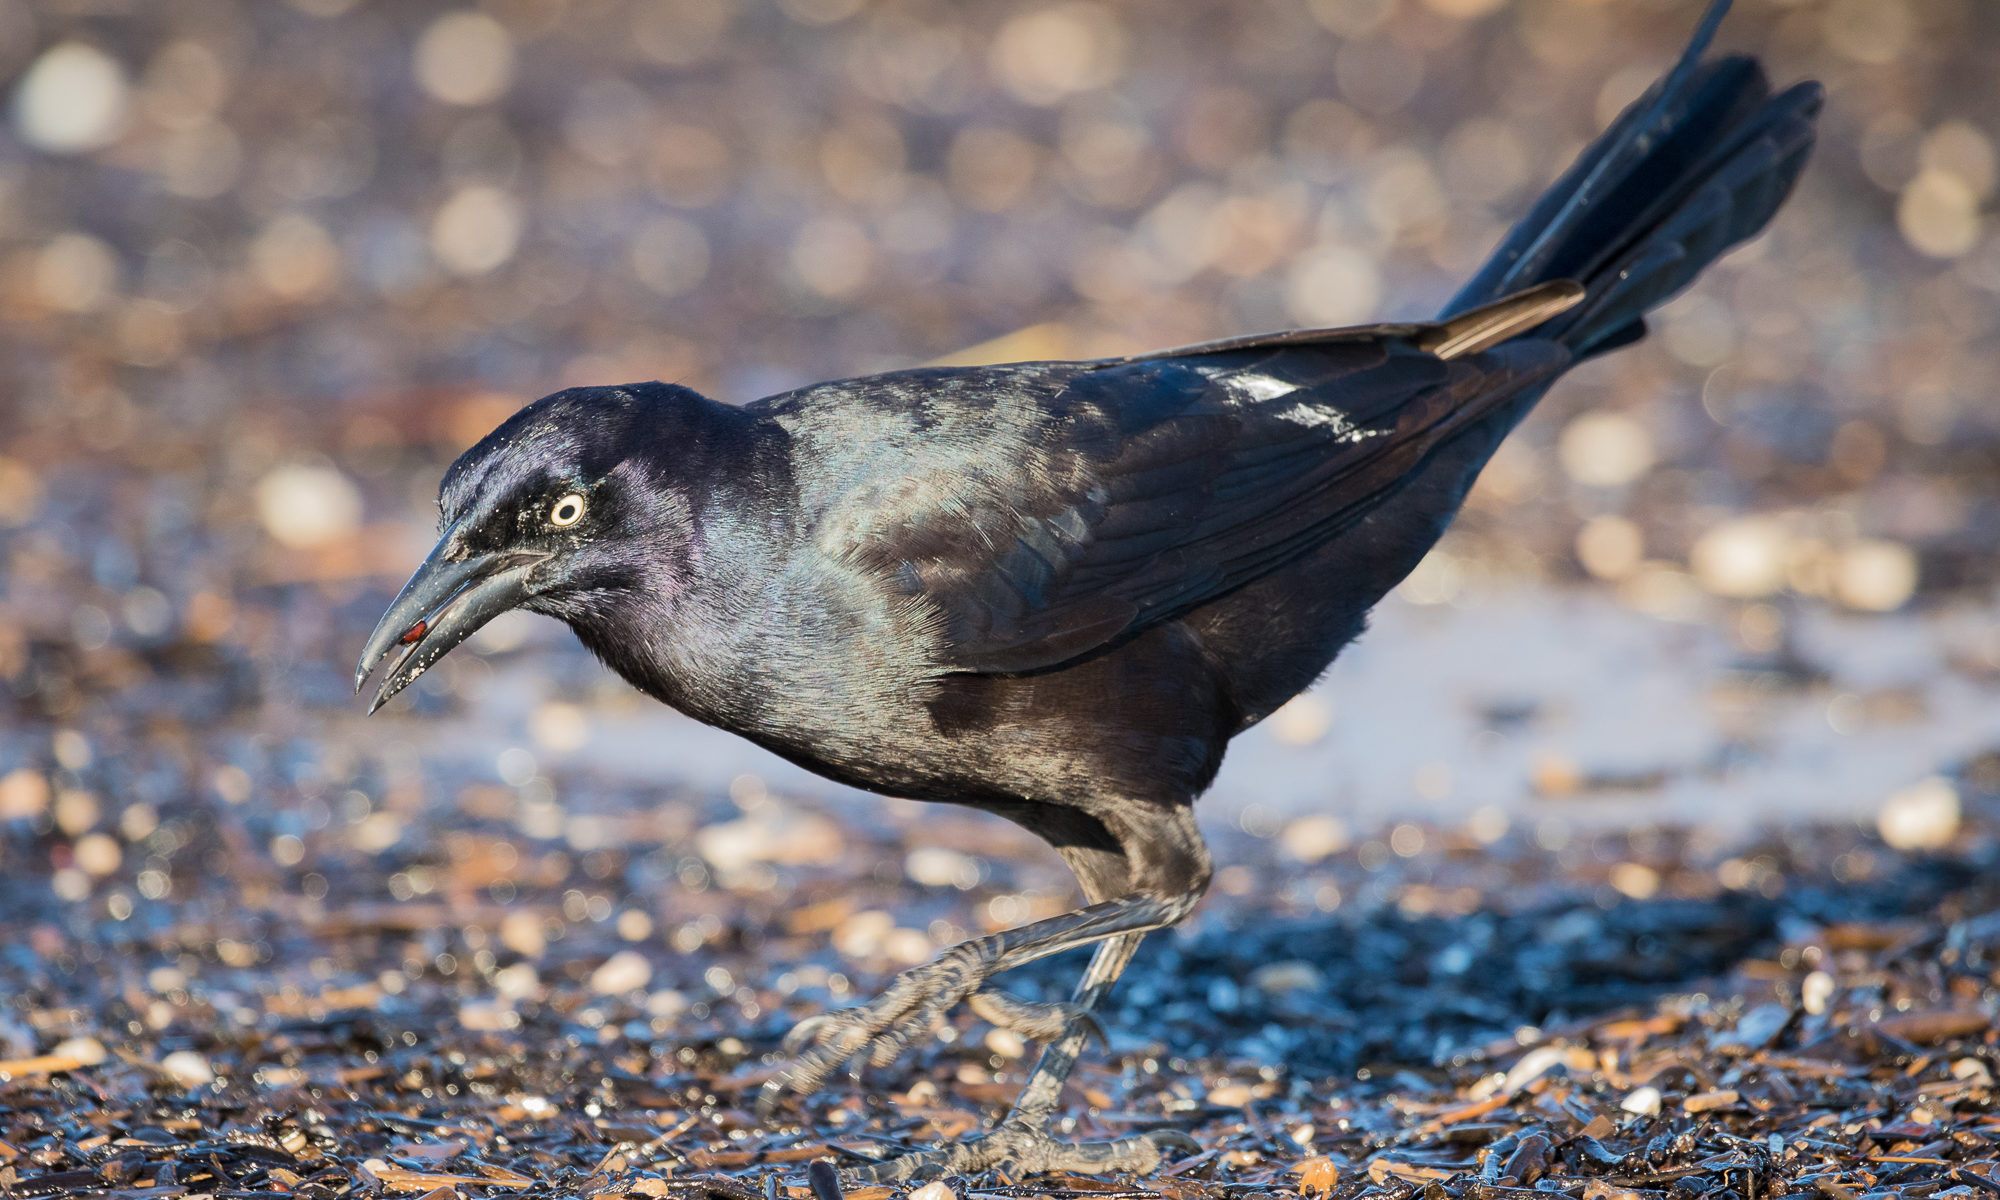 A great-tailed grackle picks food items out of the washed-up seaweed, Puerto Vallarta, Mexico